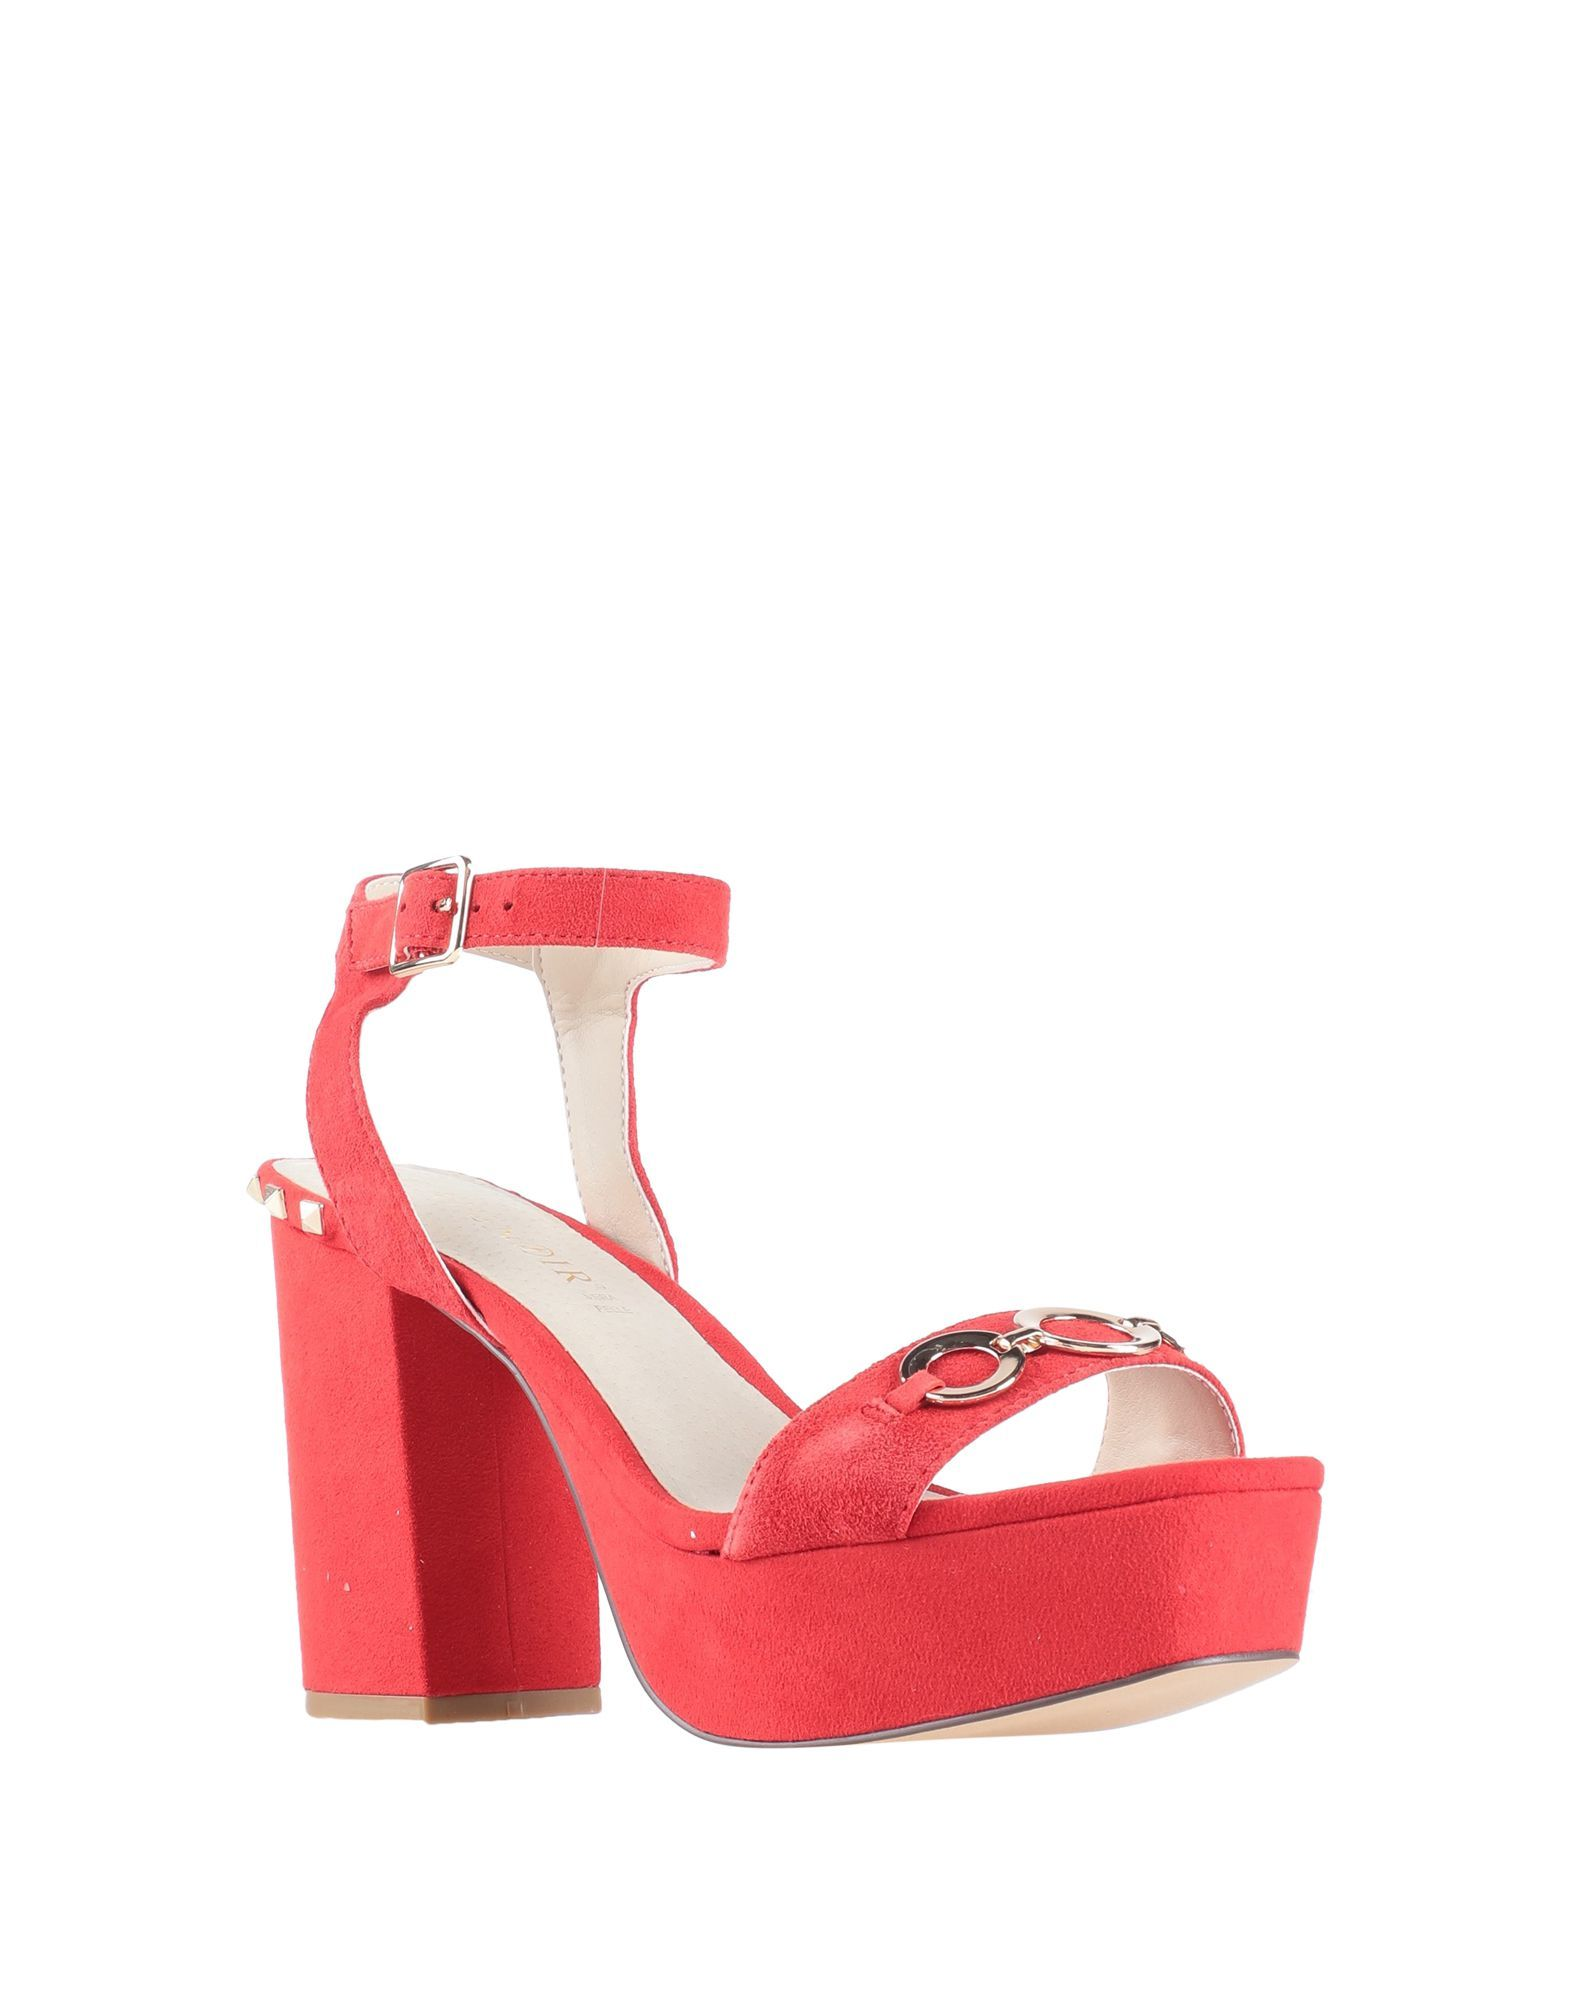 Cafenoir Red Leather Studded Heeled Sandals